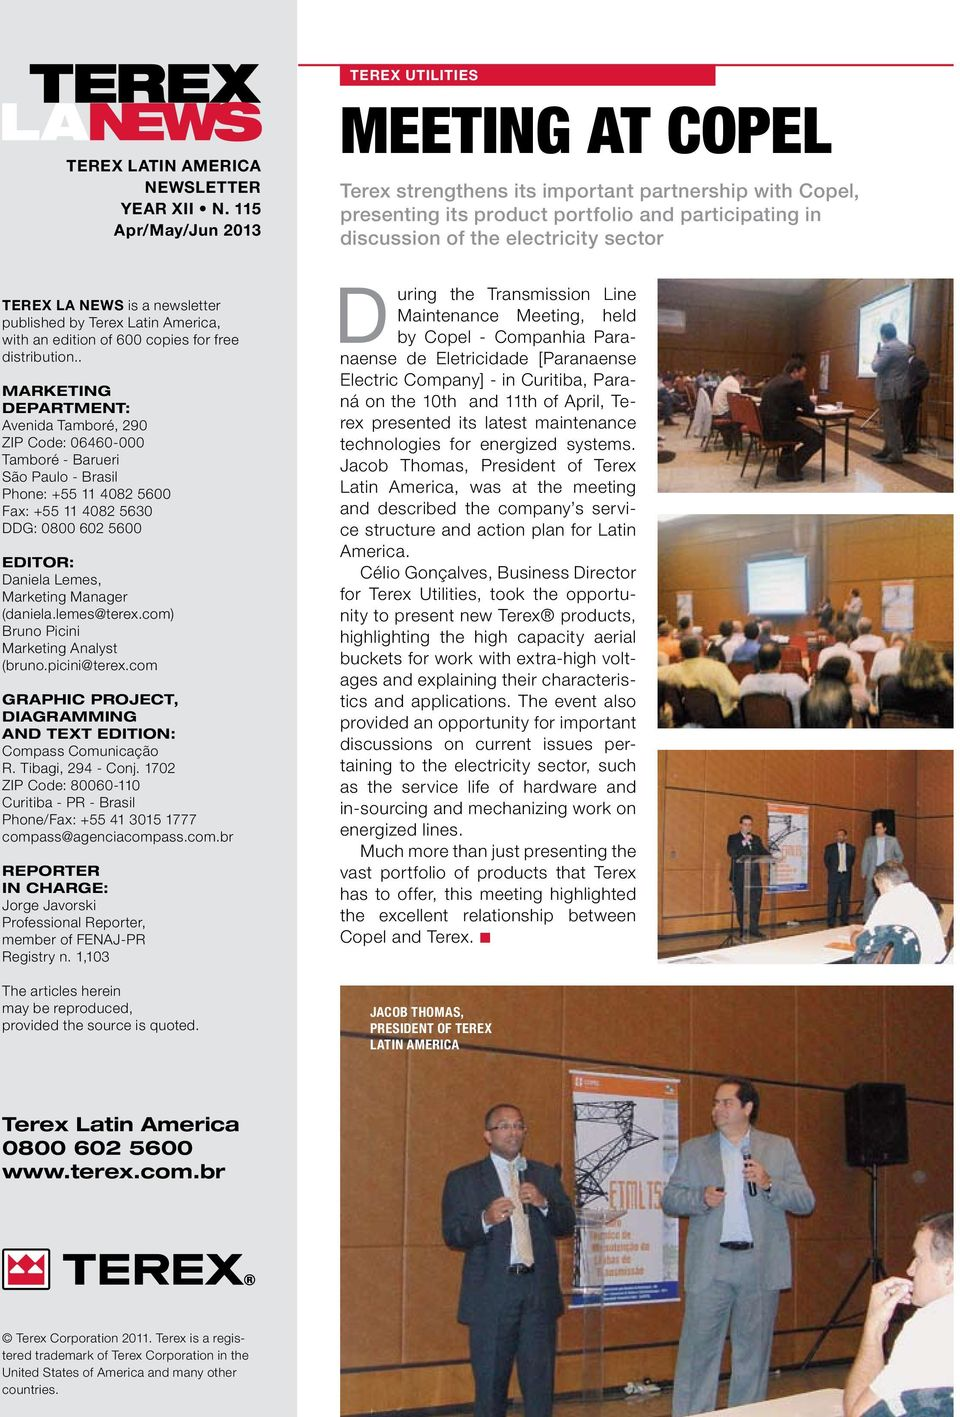 sector TEREX LA NEWS is a newsletter published by Terex Latin America, with an edition of 600 copies for free distribution.